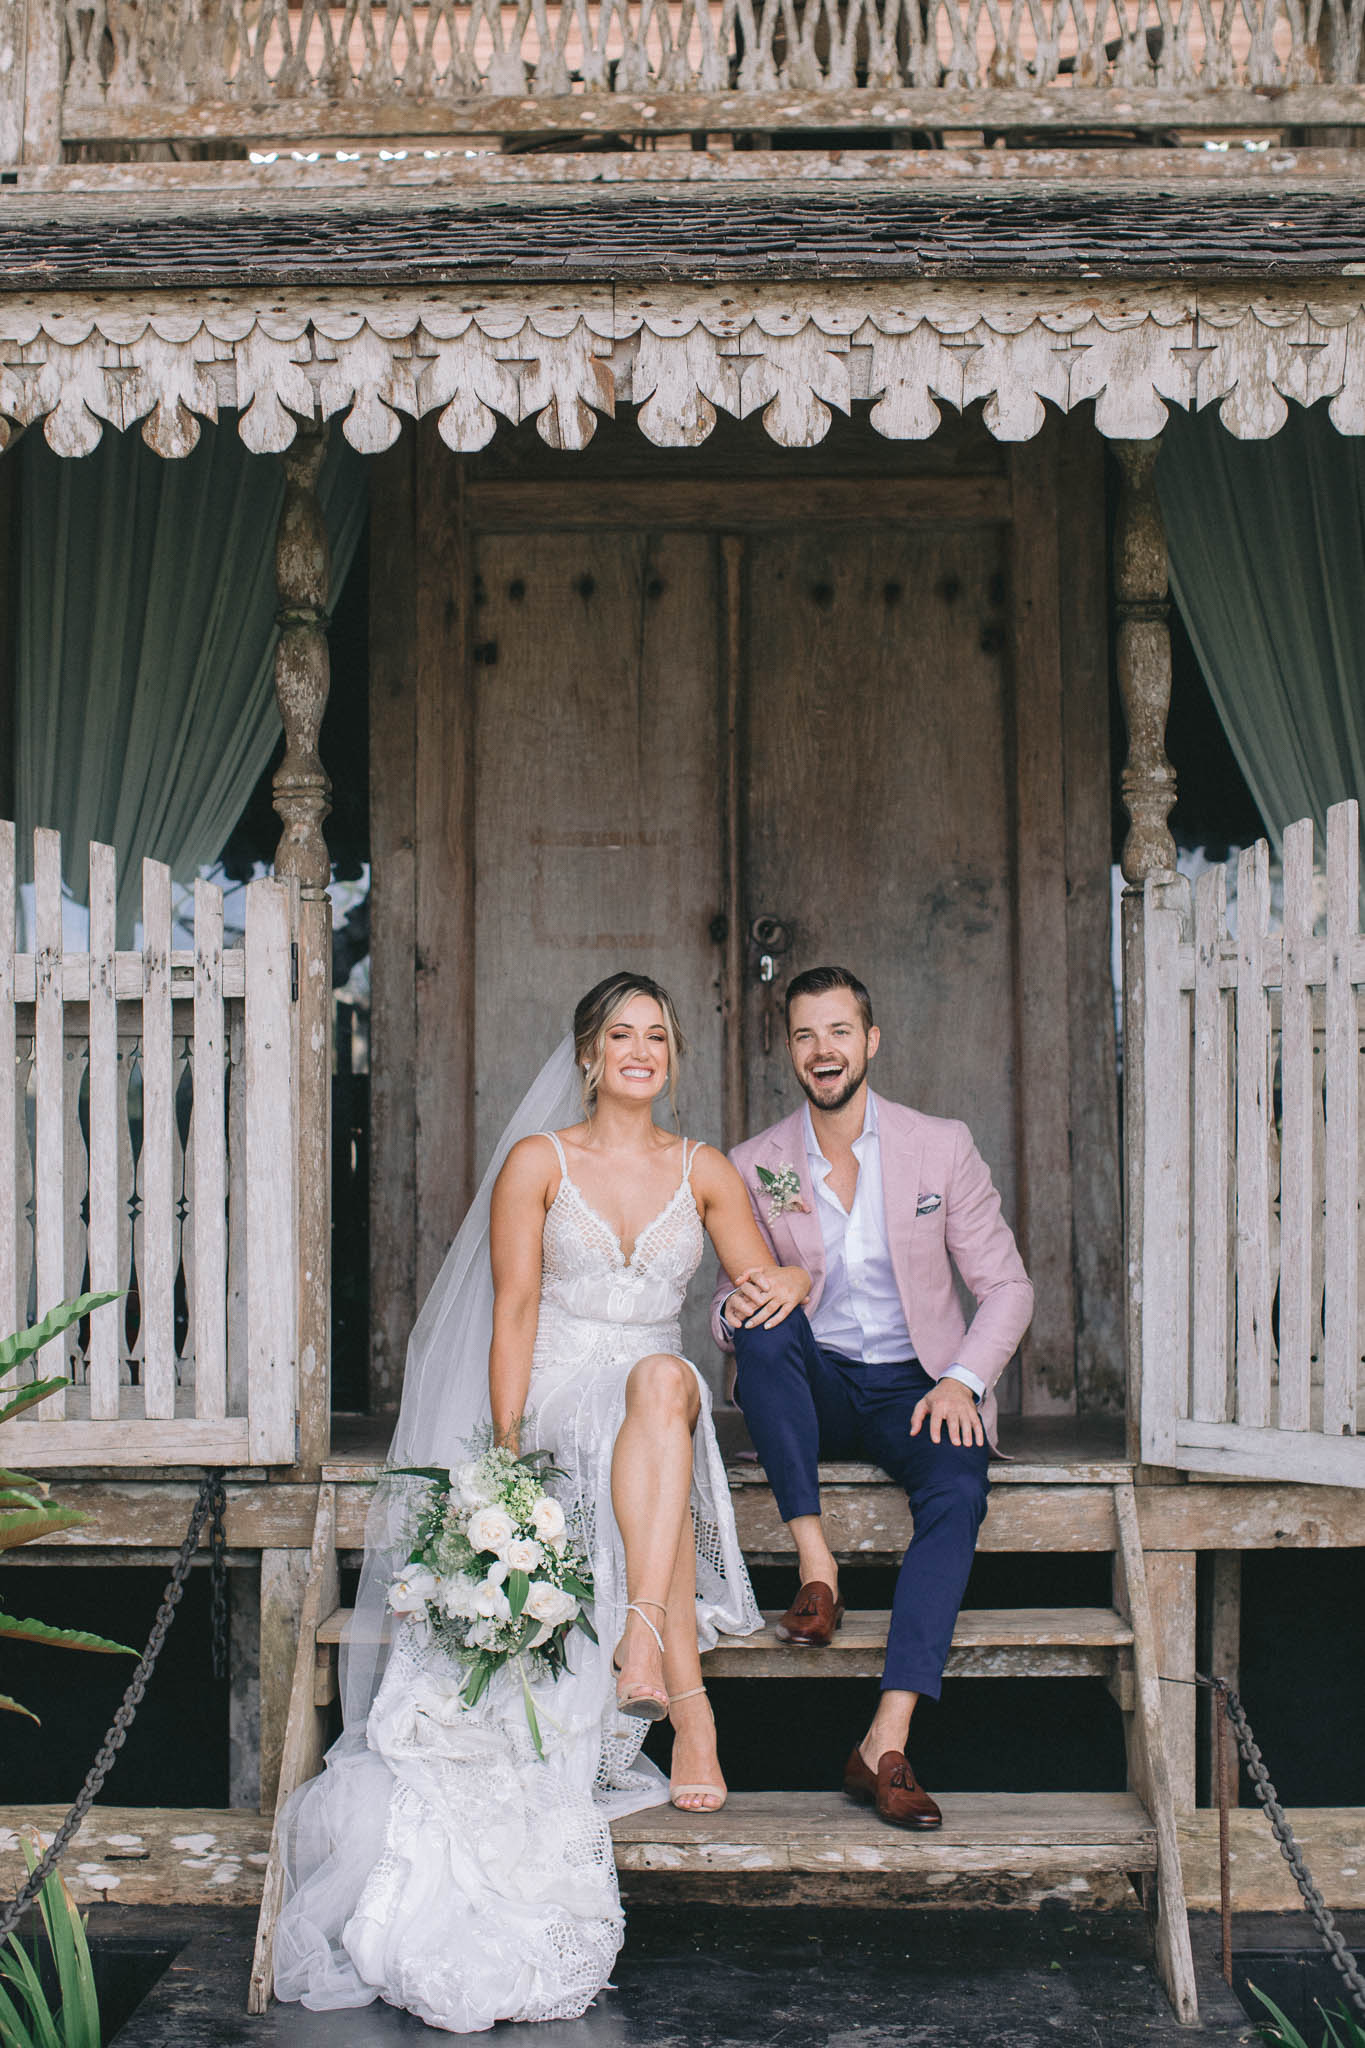 Khayangan Estate Bali Wedding Von Kiel Kat Rollings Photography bride and groom sitting on steps of a traditional balinese house